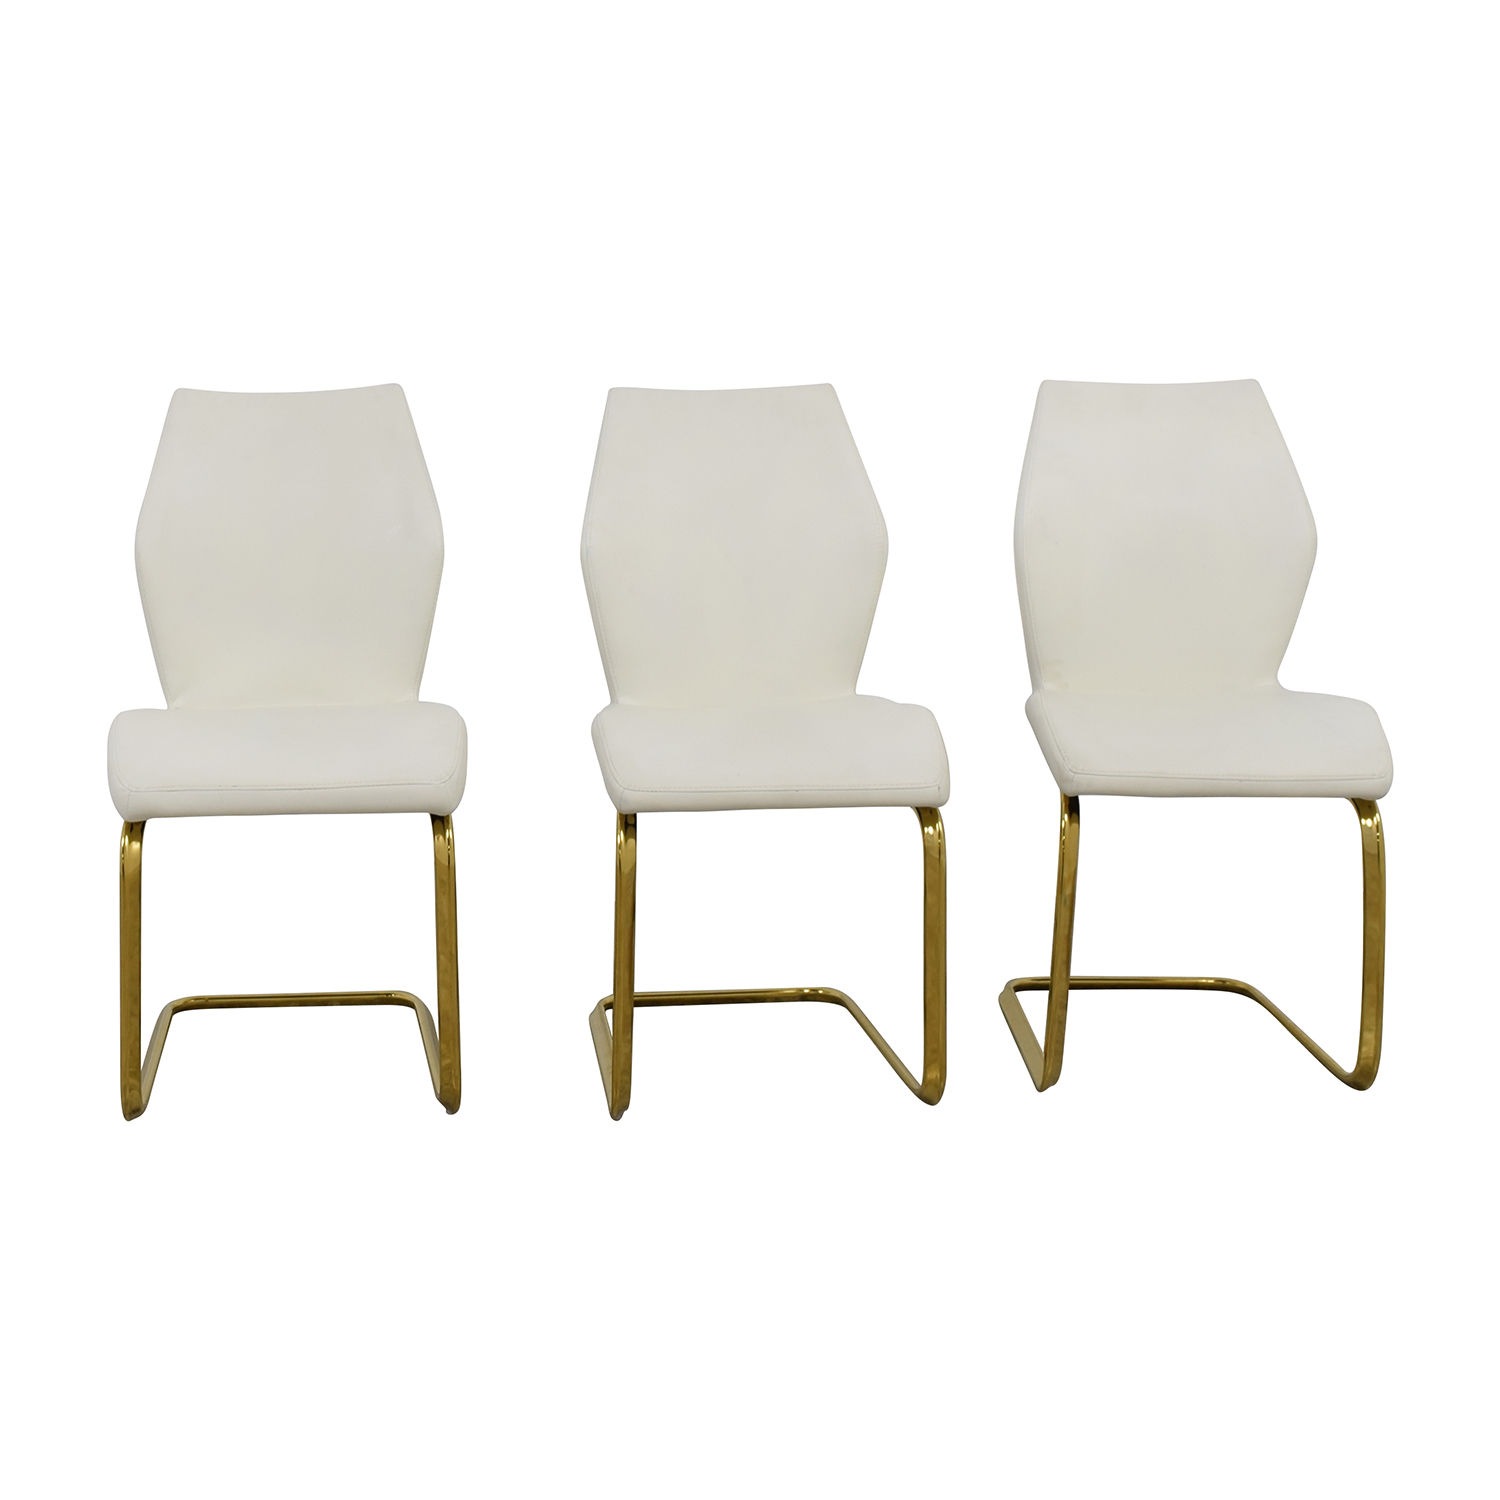 Chairs used chairs for sale for White leather dining chairs